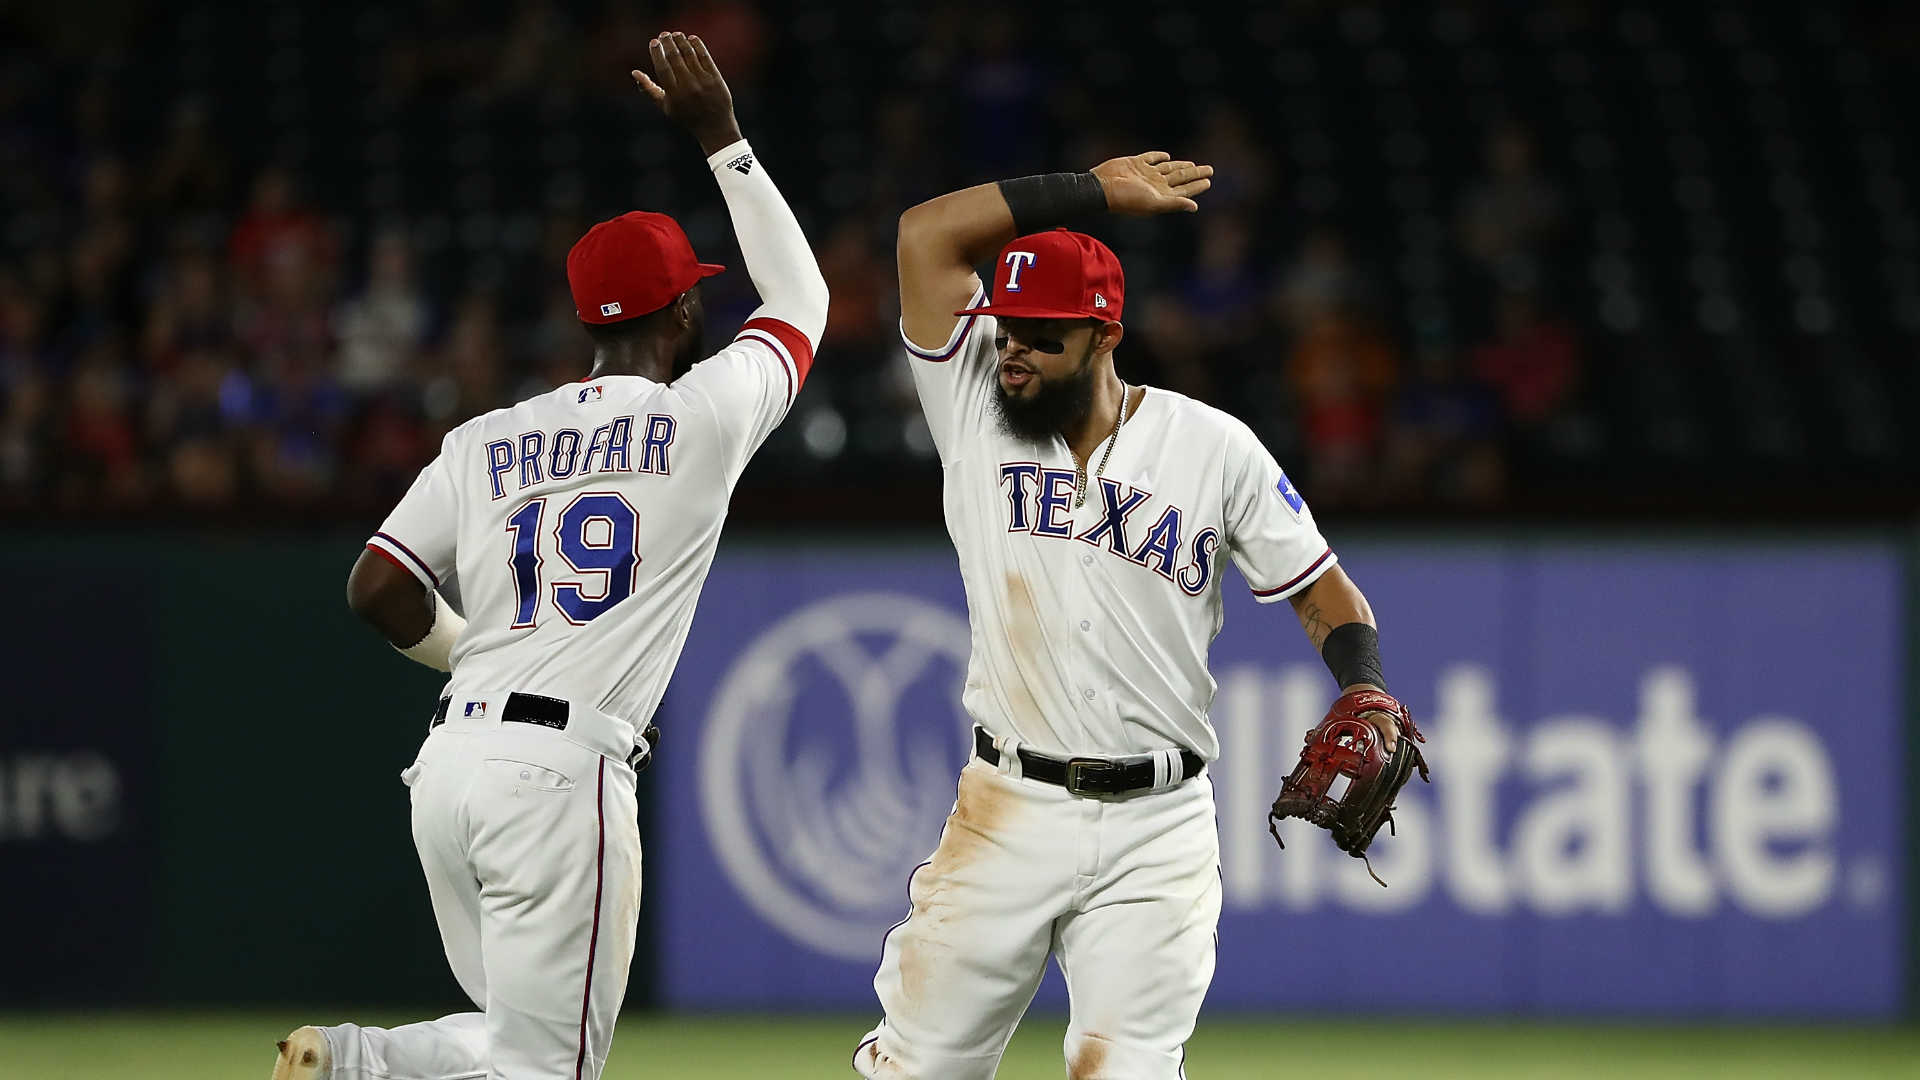 Rangers turn rare triple play vs. Angels